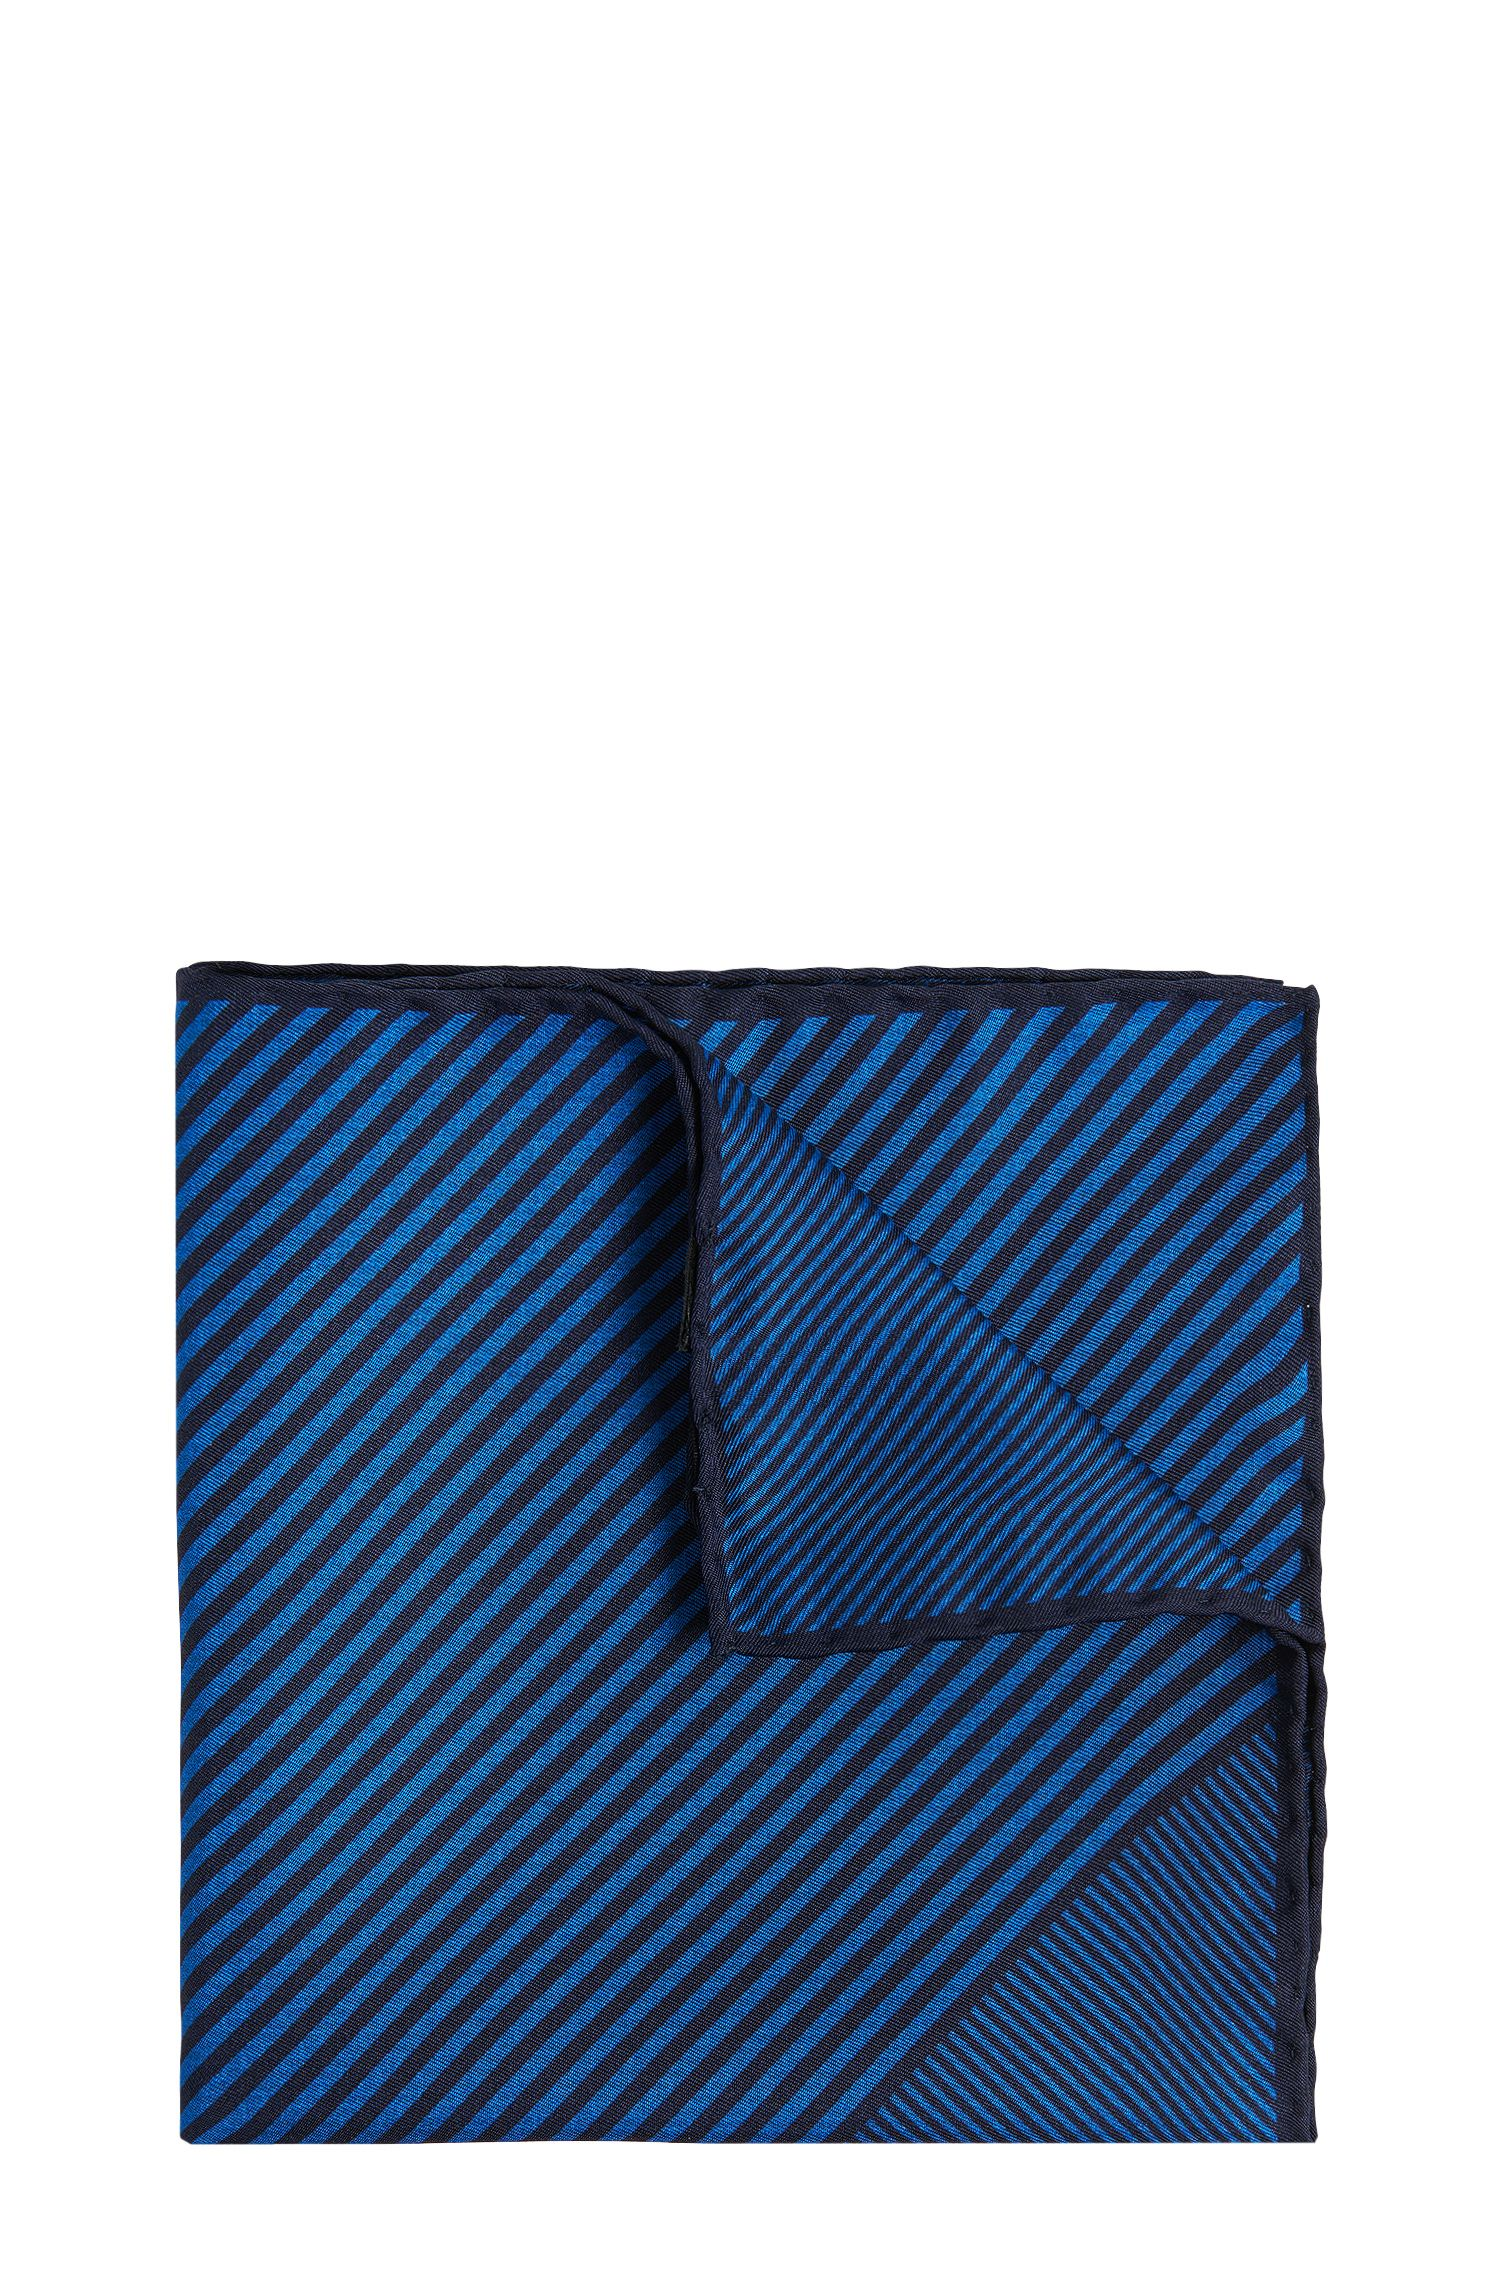 'T-Pocket Square 33 x 33' | Silk Pocket Square